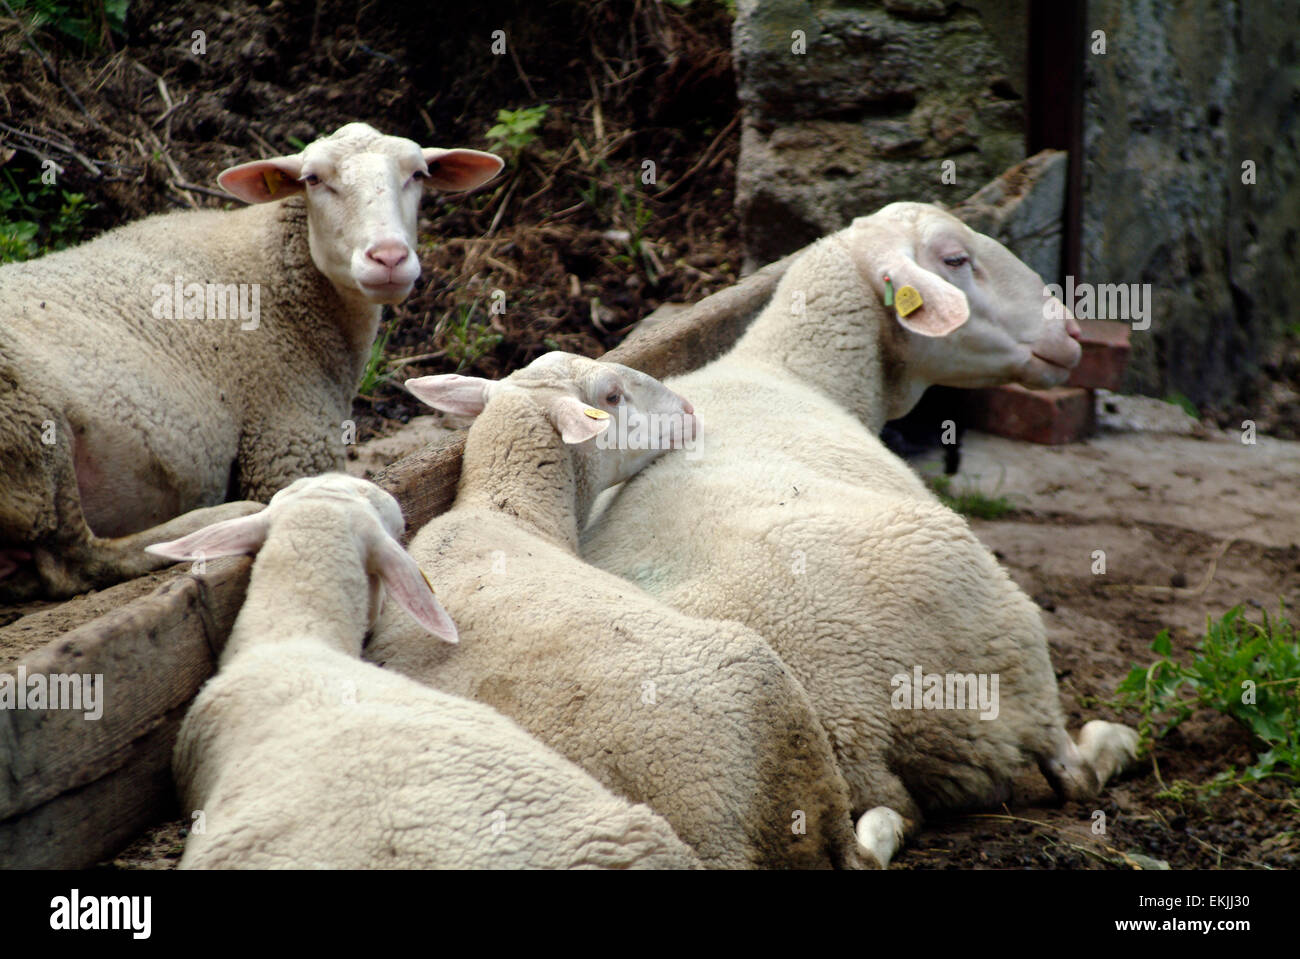 Flog of sheeps lying and resting - Stock Image